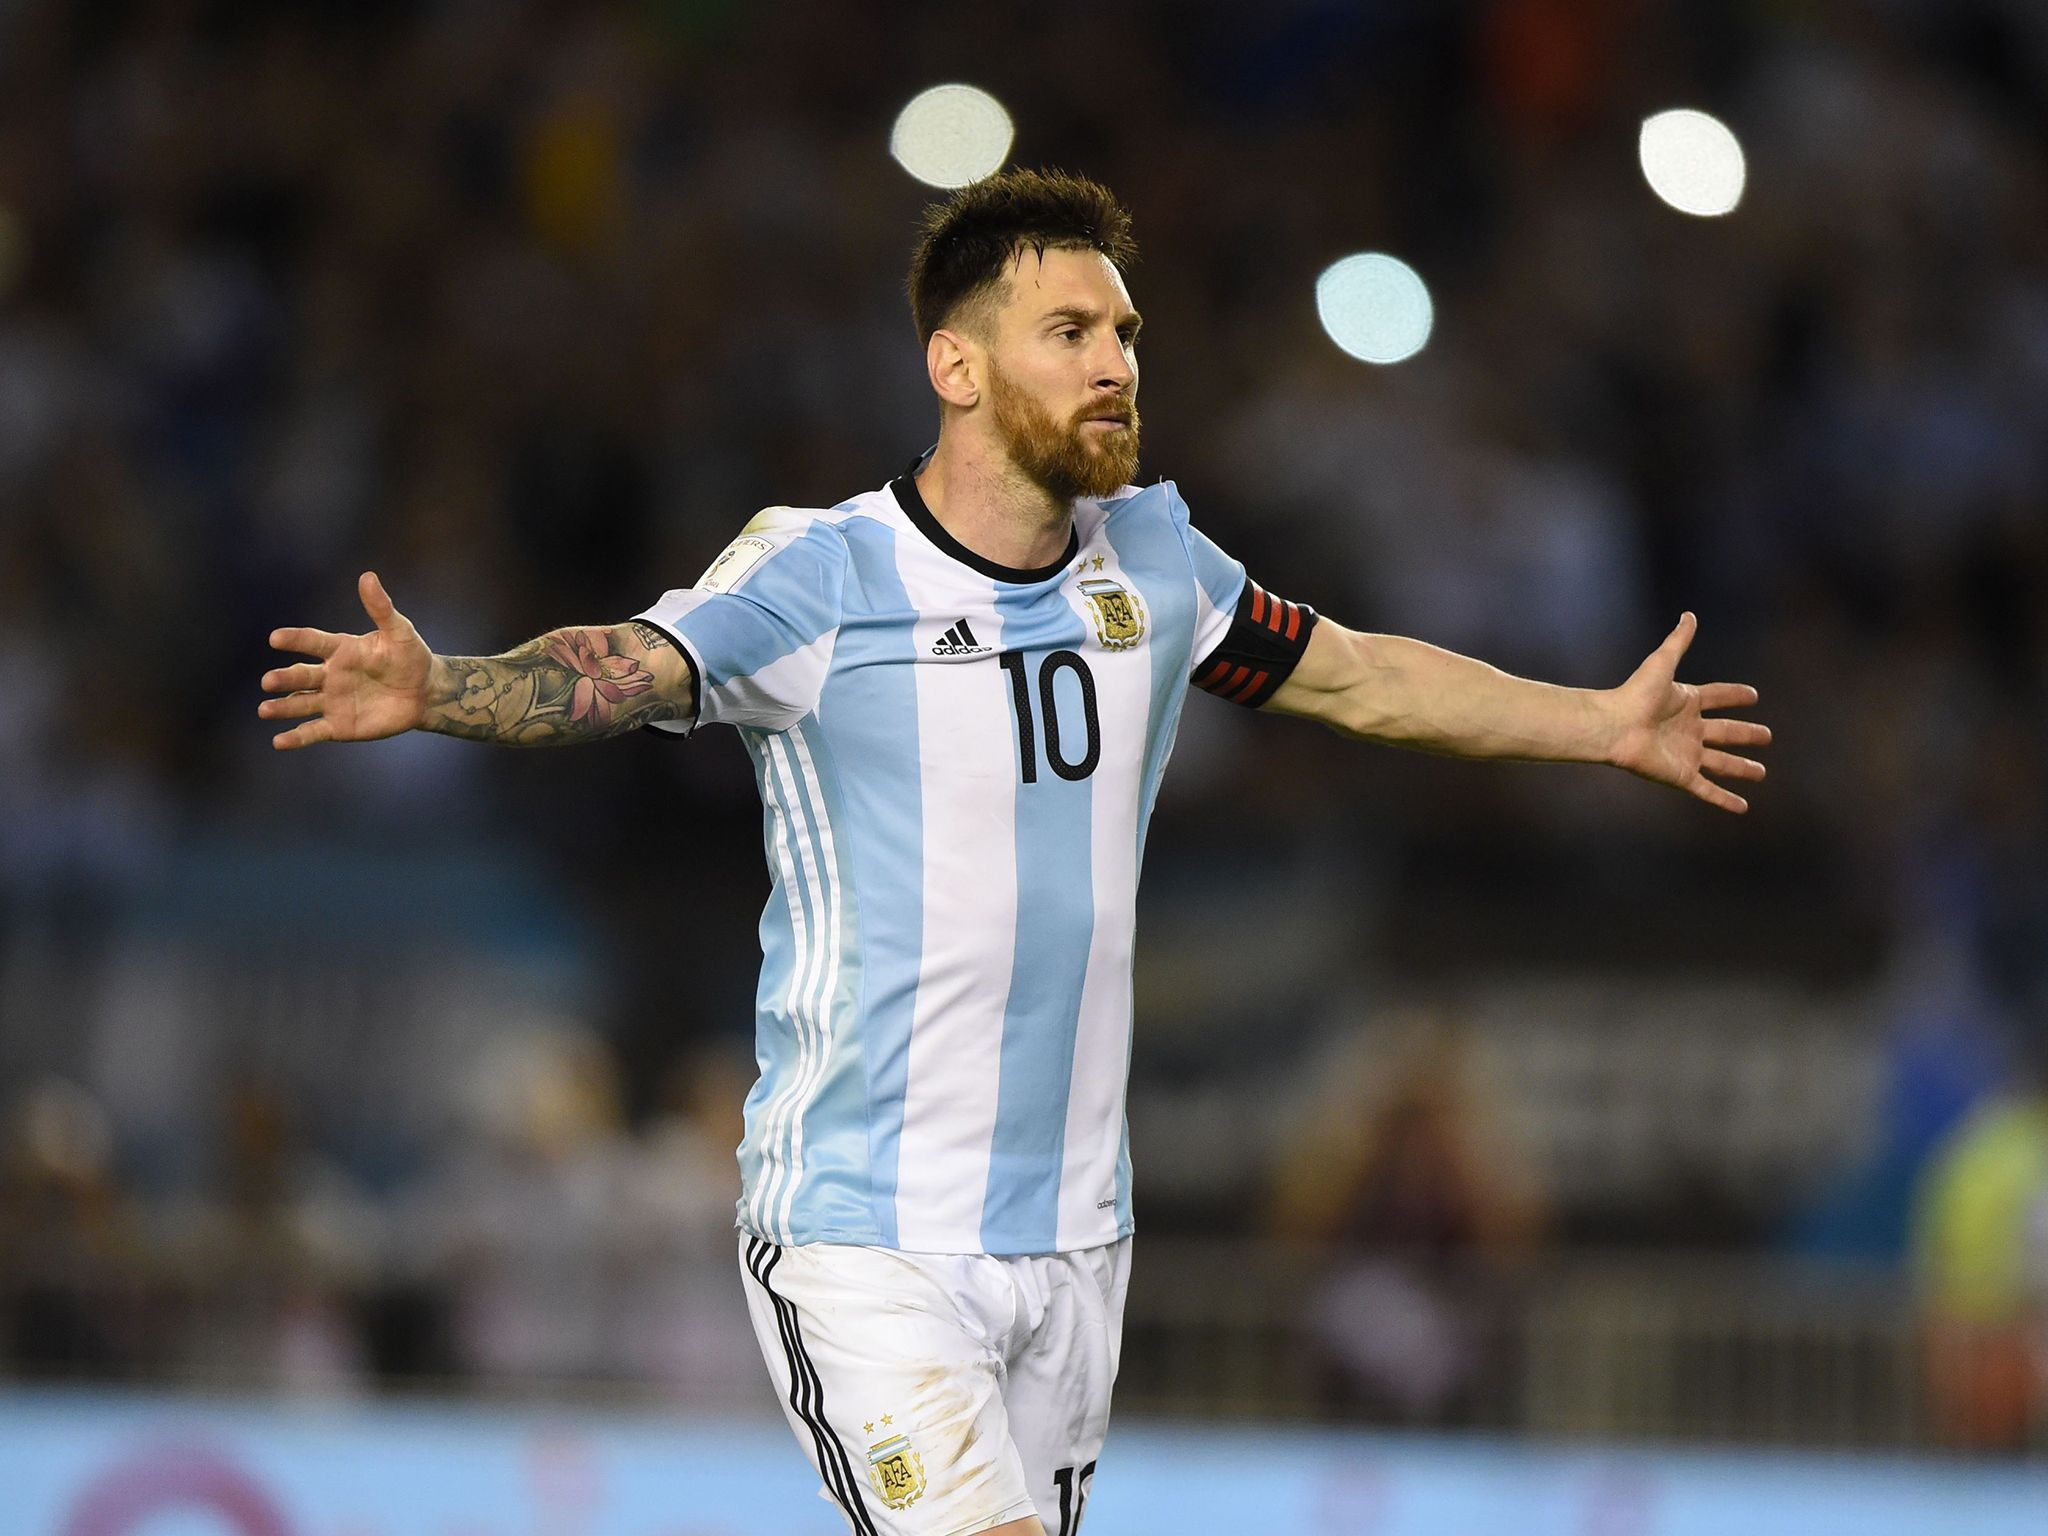 Hd Lionel Messi Picture 2018 ~ Inspiring Quotes and words In Life